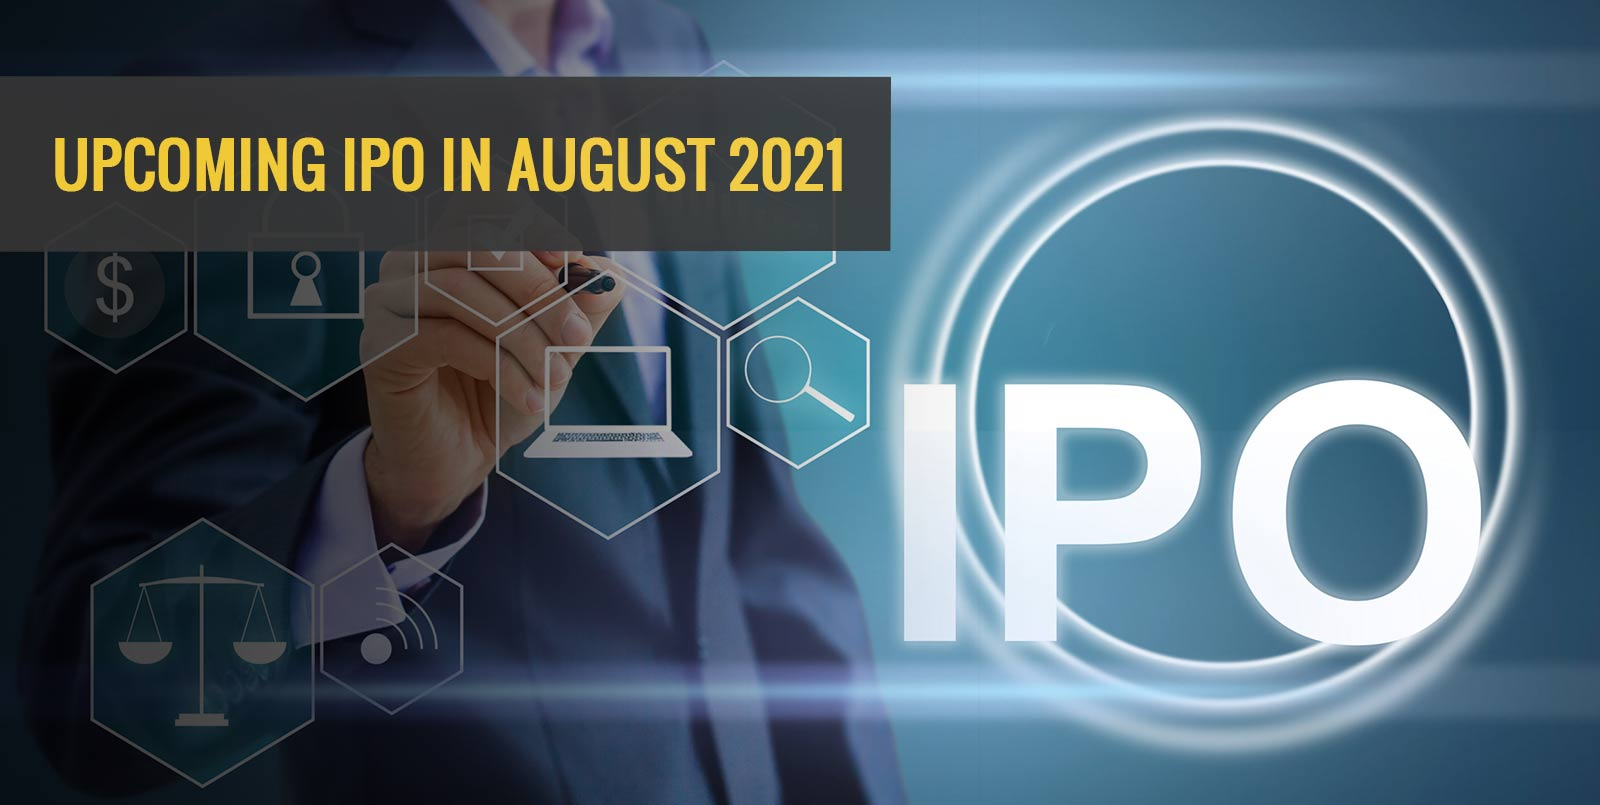 Upcoming IPO in August 2021